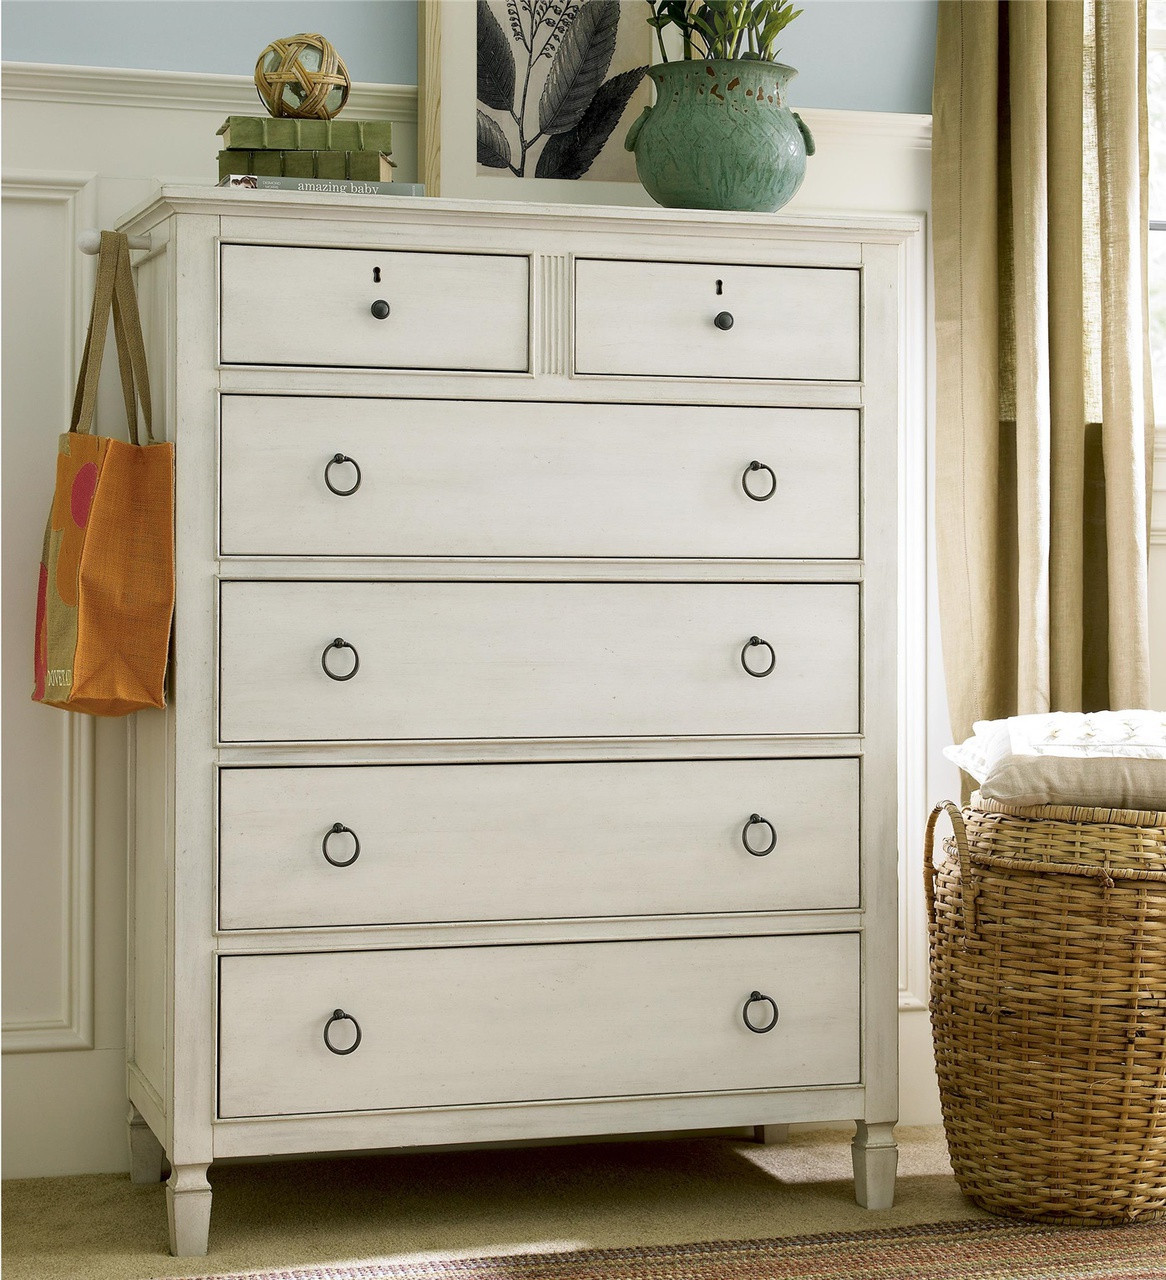 6 Drawer Chest Of Drawers Country Chic Maple Wood 6 Drawers Chest White